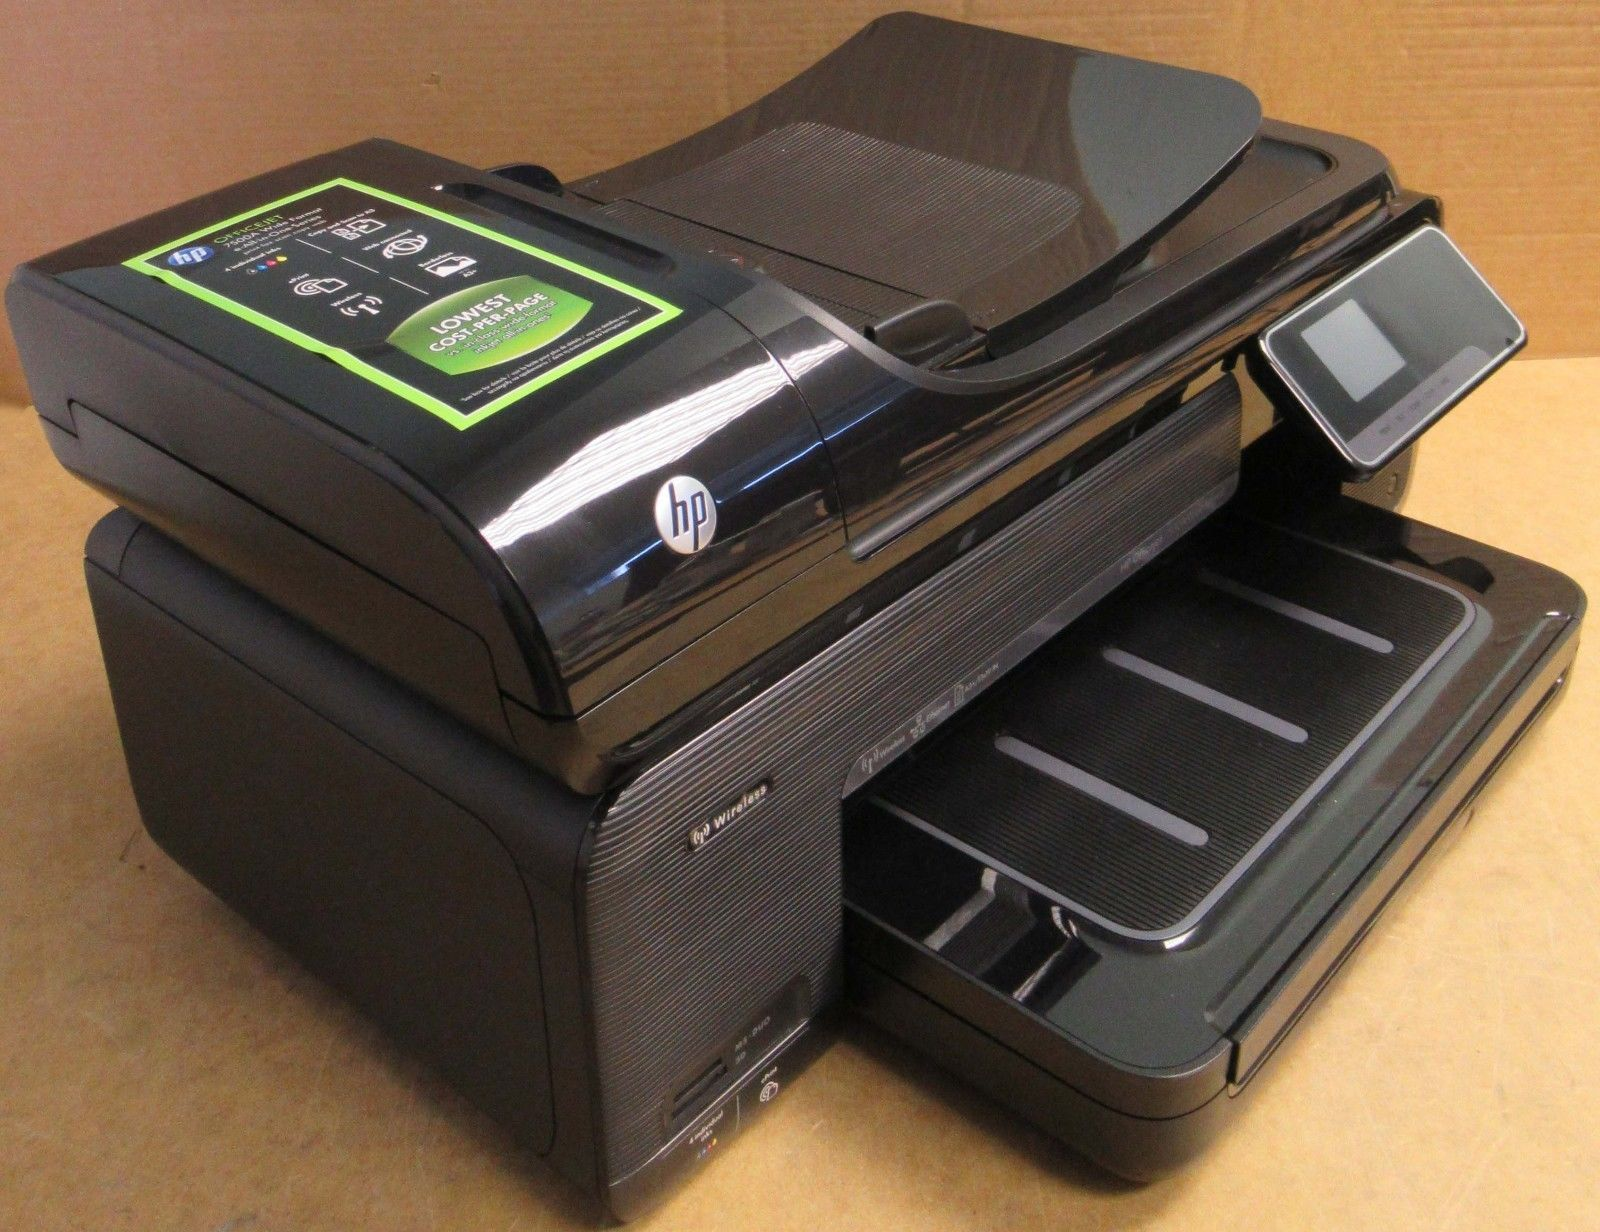 Famed One Scan Fax Print C9309a 5 53034 P Hp Officejet 7500a Printer Ink Hp Officejet 7500a Carriage Jam Hp Officejet 7500a Wide Format Wireless Printer All dpreview Hp Officejet 7500a